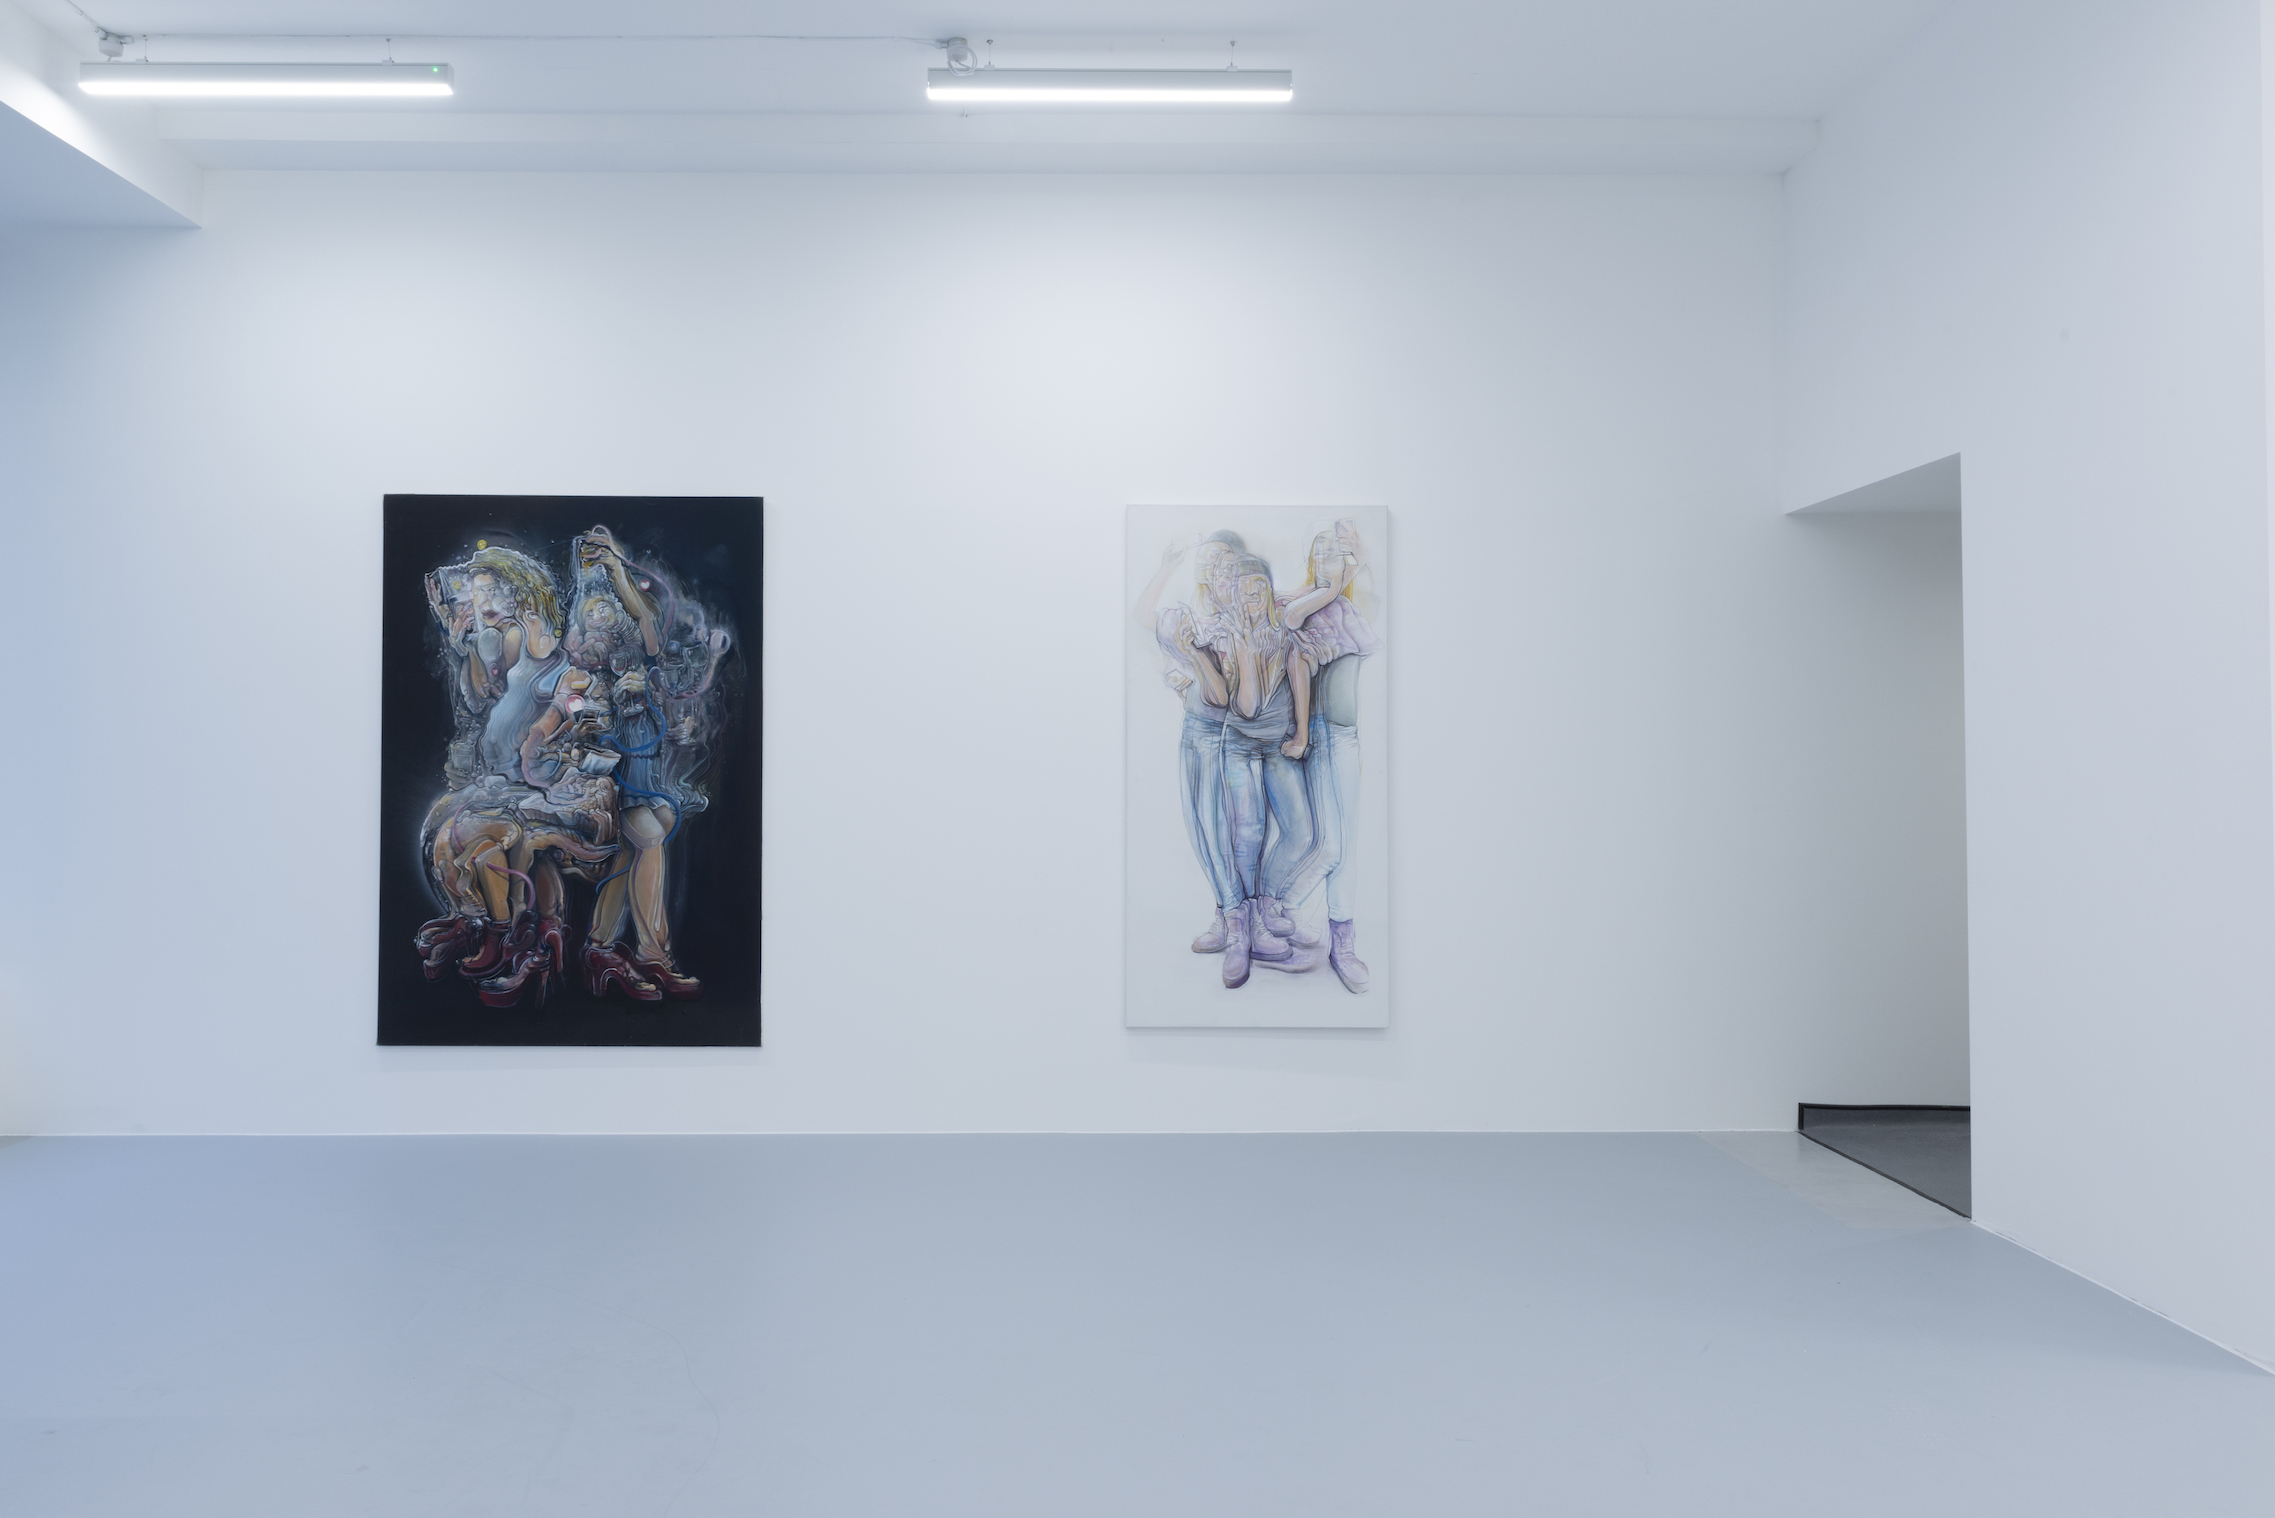 Installation view 4, Pascal Sender at Saatchi Yates, 2020, Courtesy of the artist and Saatchi Yates